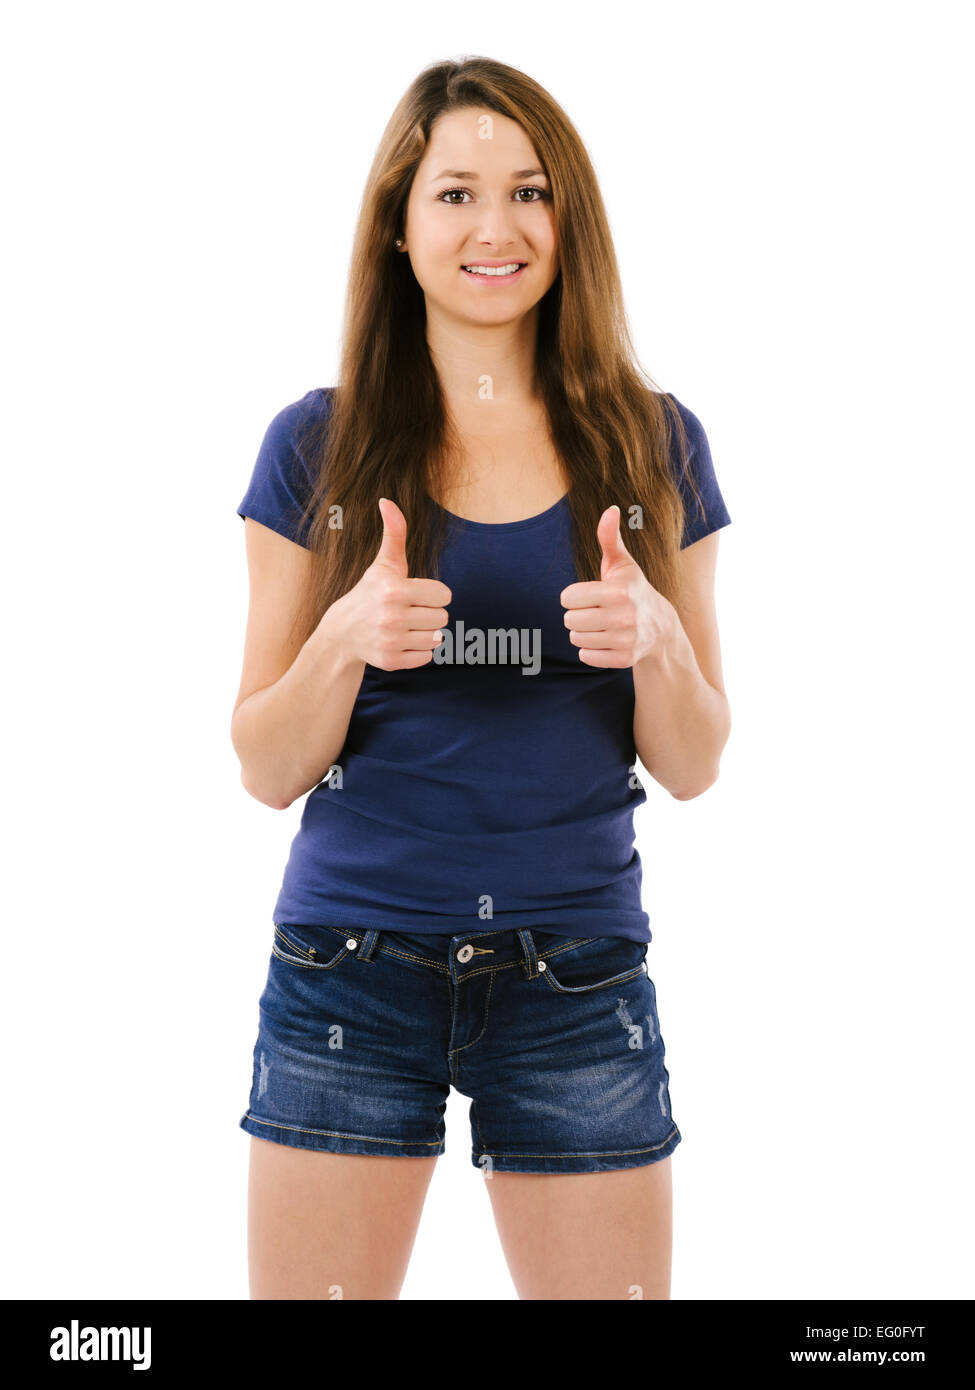 Photo of an happy young female doing the two thumbs up gesture over white background. - Stock Image